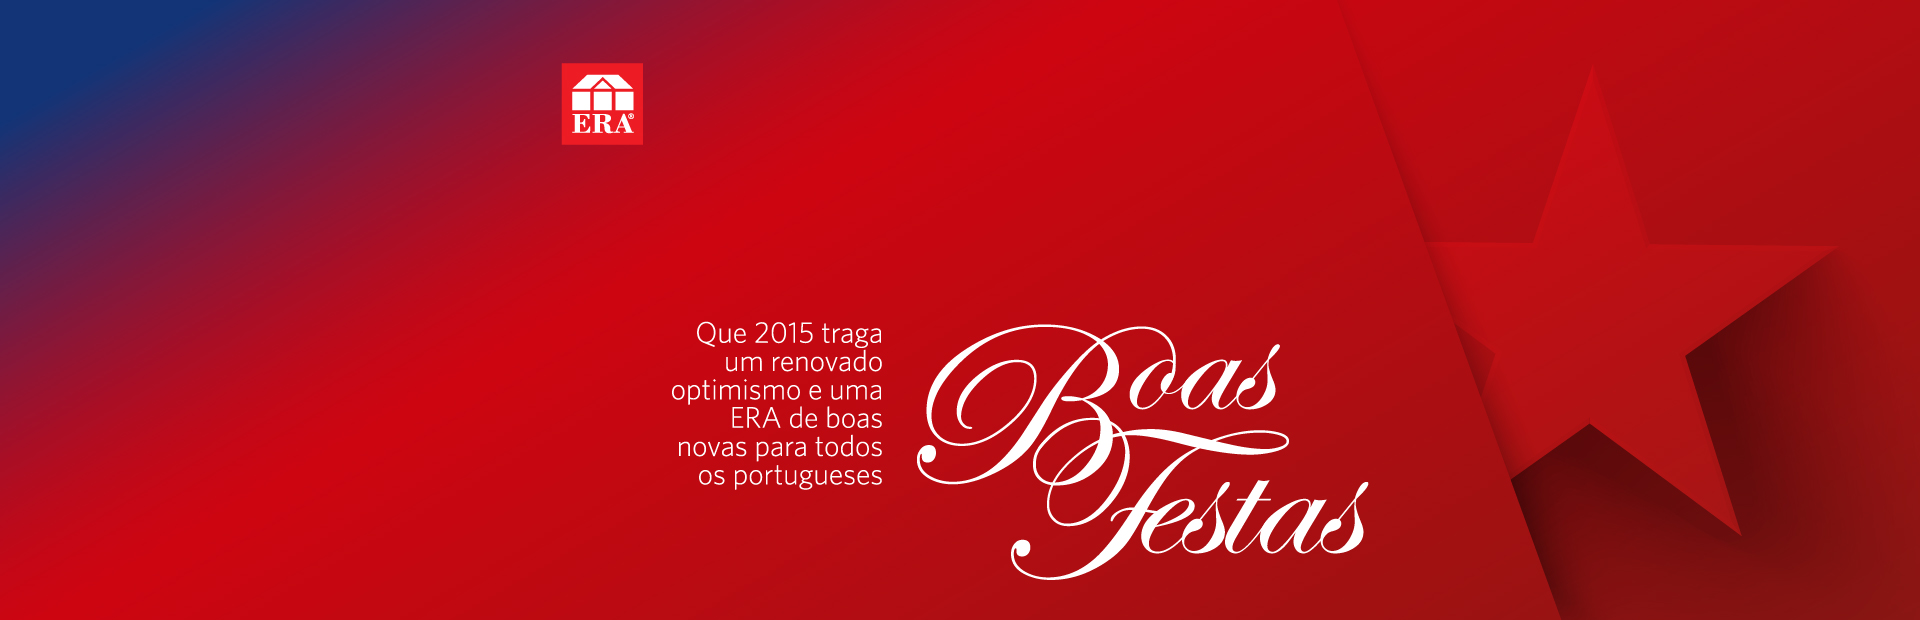 AF_1920x620px_SITE_ERA_BoasFestas14_UK.jpg